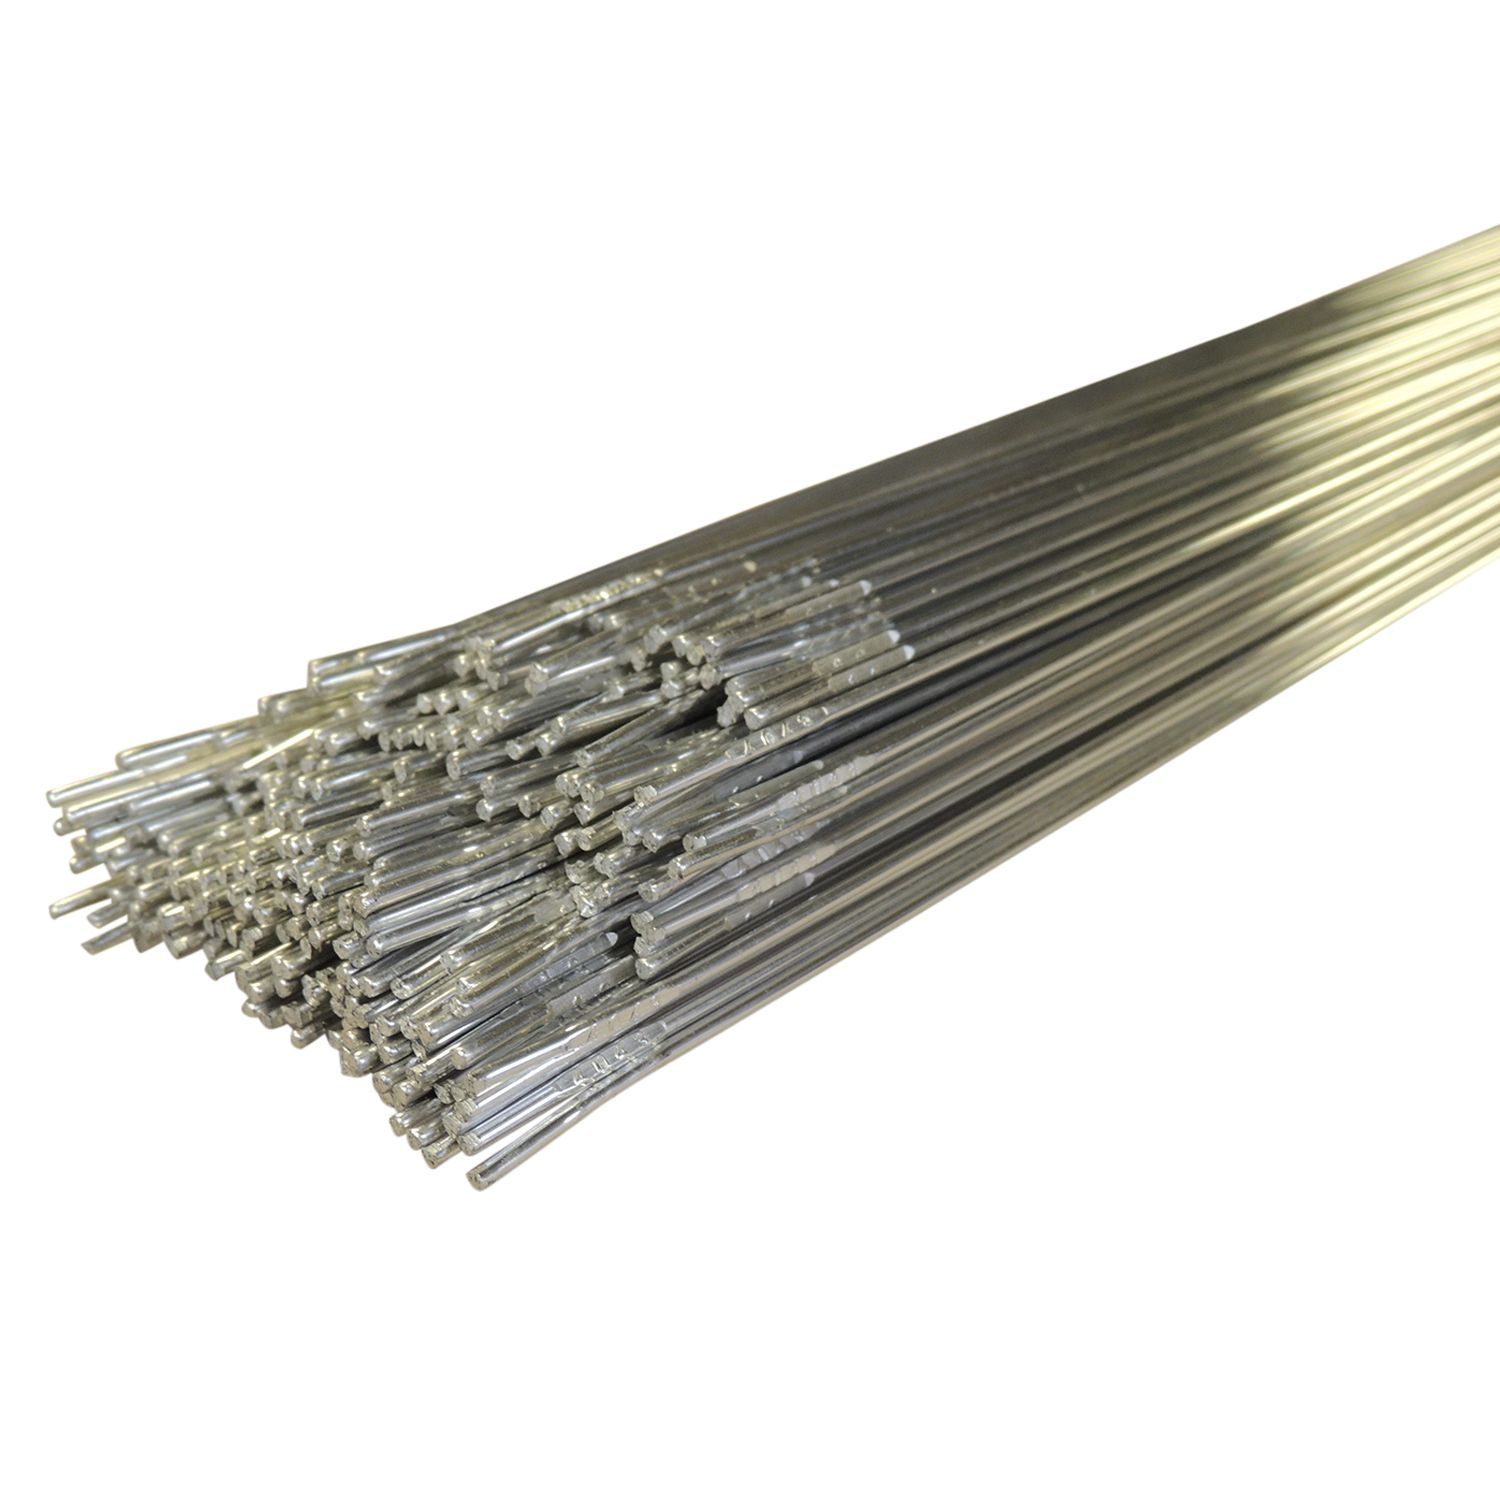 2.5KG 5556 ALUMINIUM WELDING RODS TIG FILLER 1.6mm 2.4mm 3.2mm